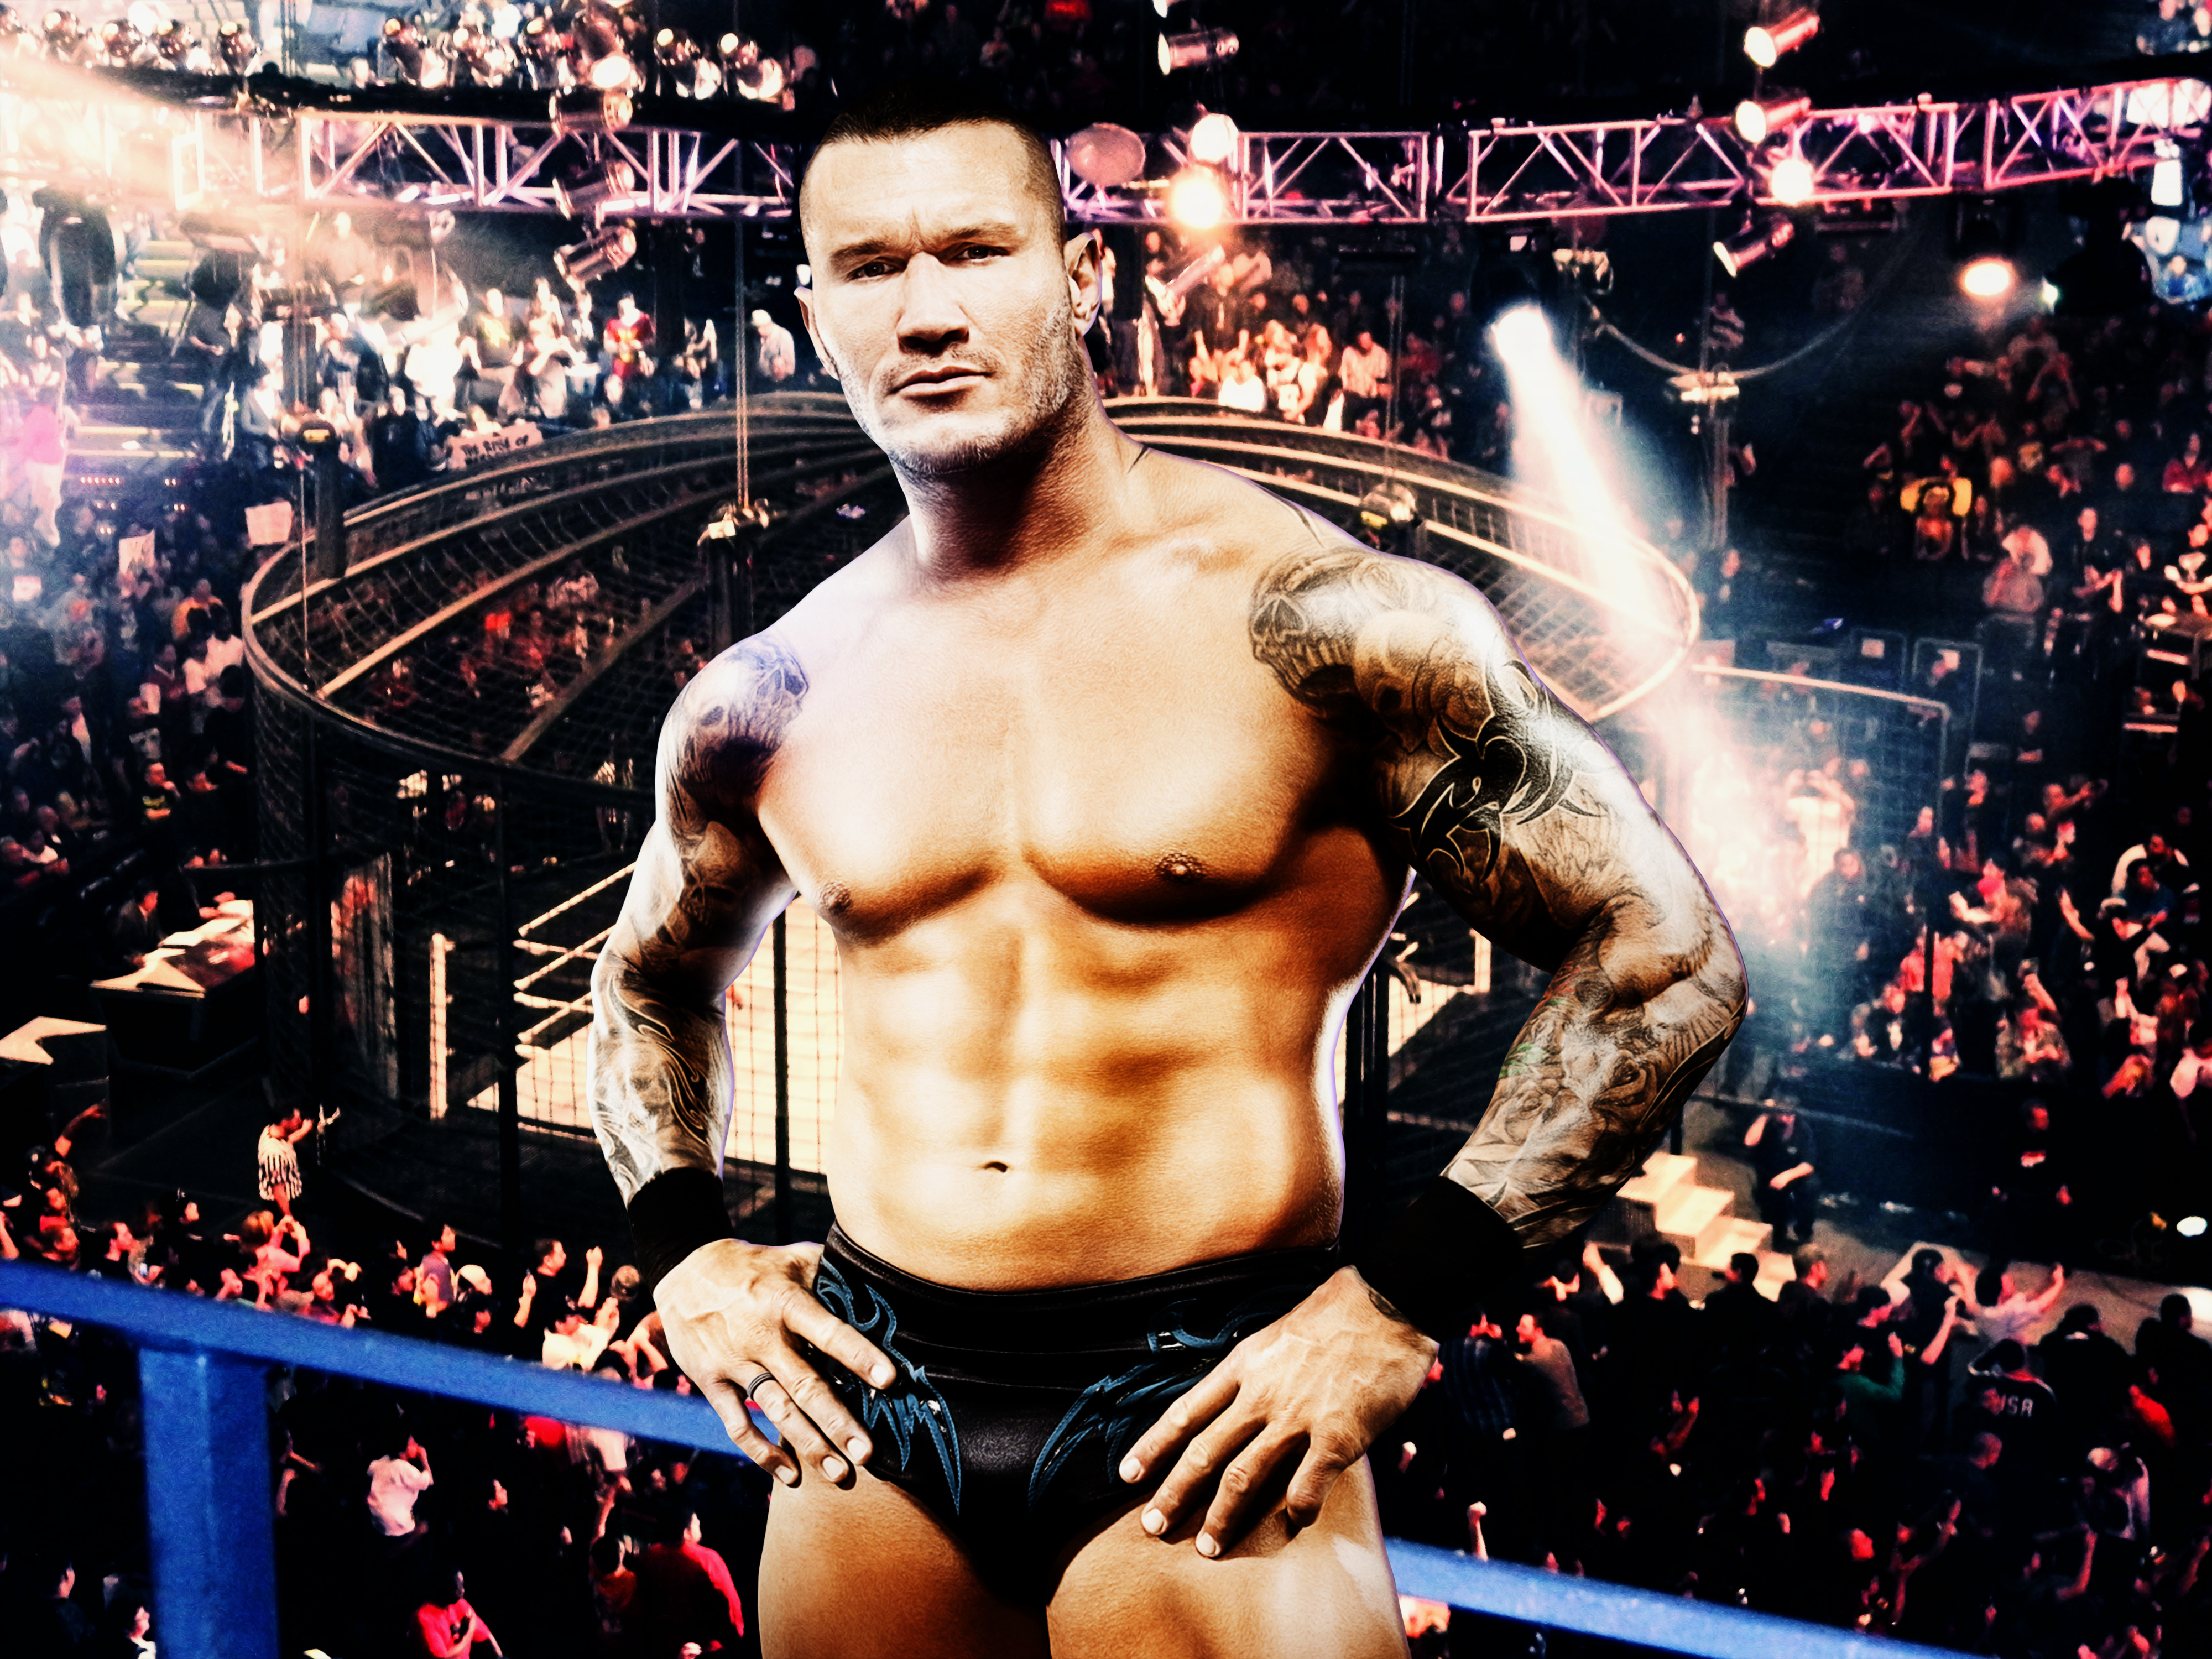 Randy Orton Elimination Chamber wallpaper by menasamih on 4000x3000